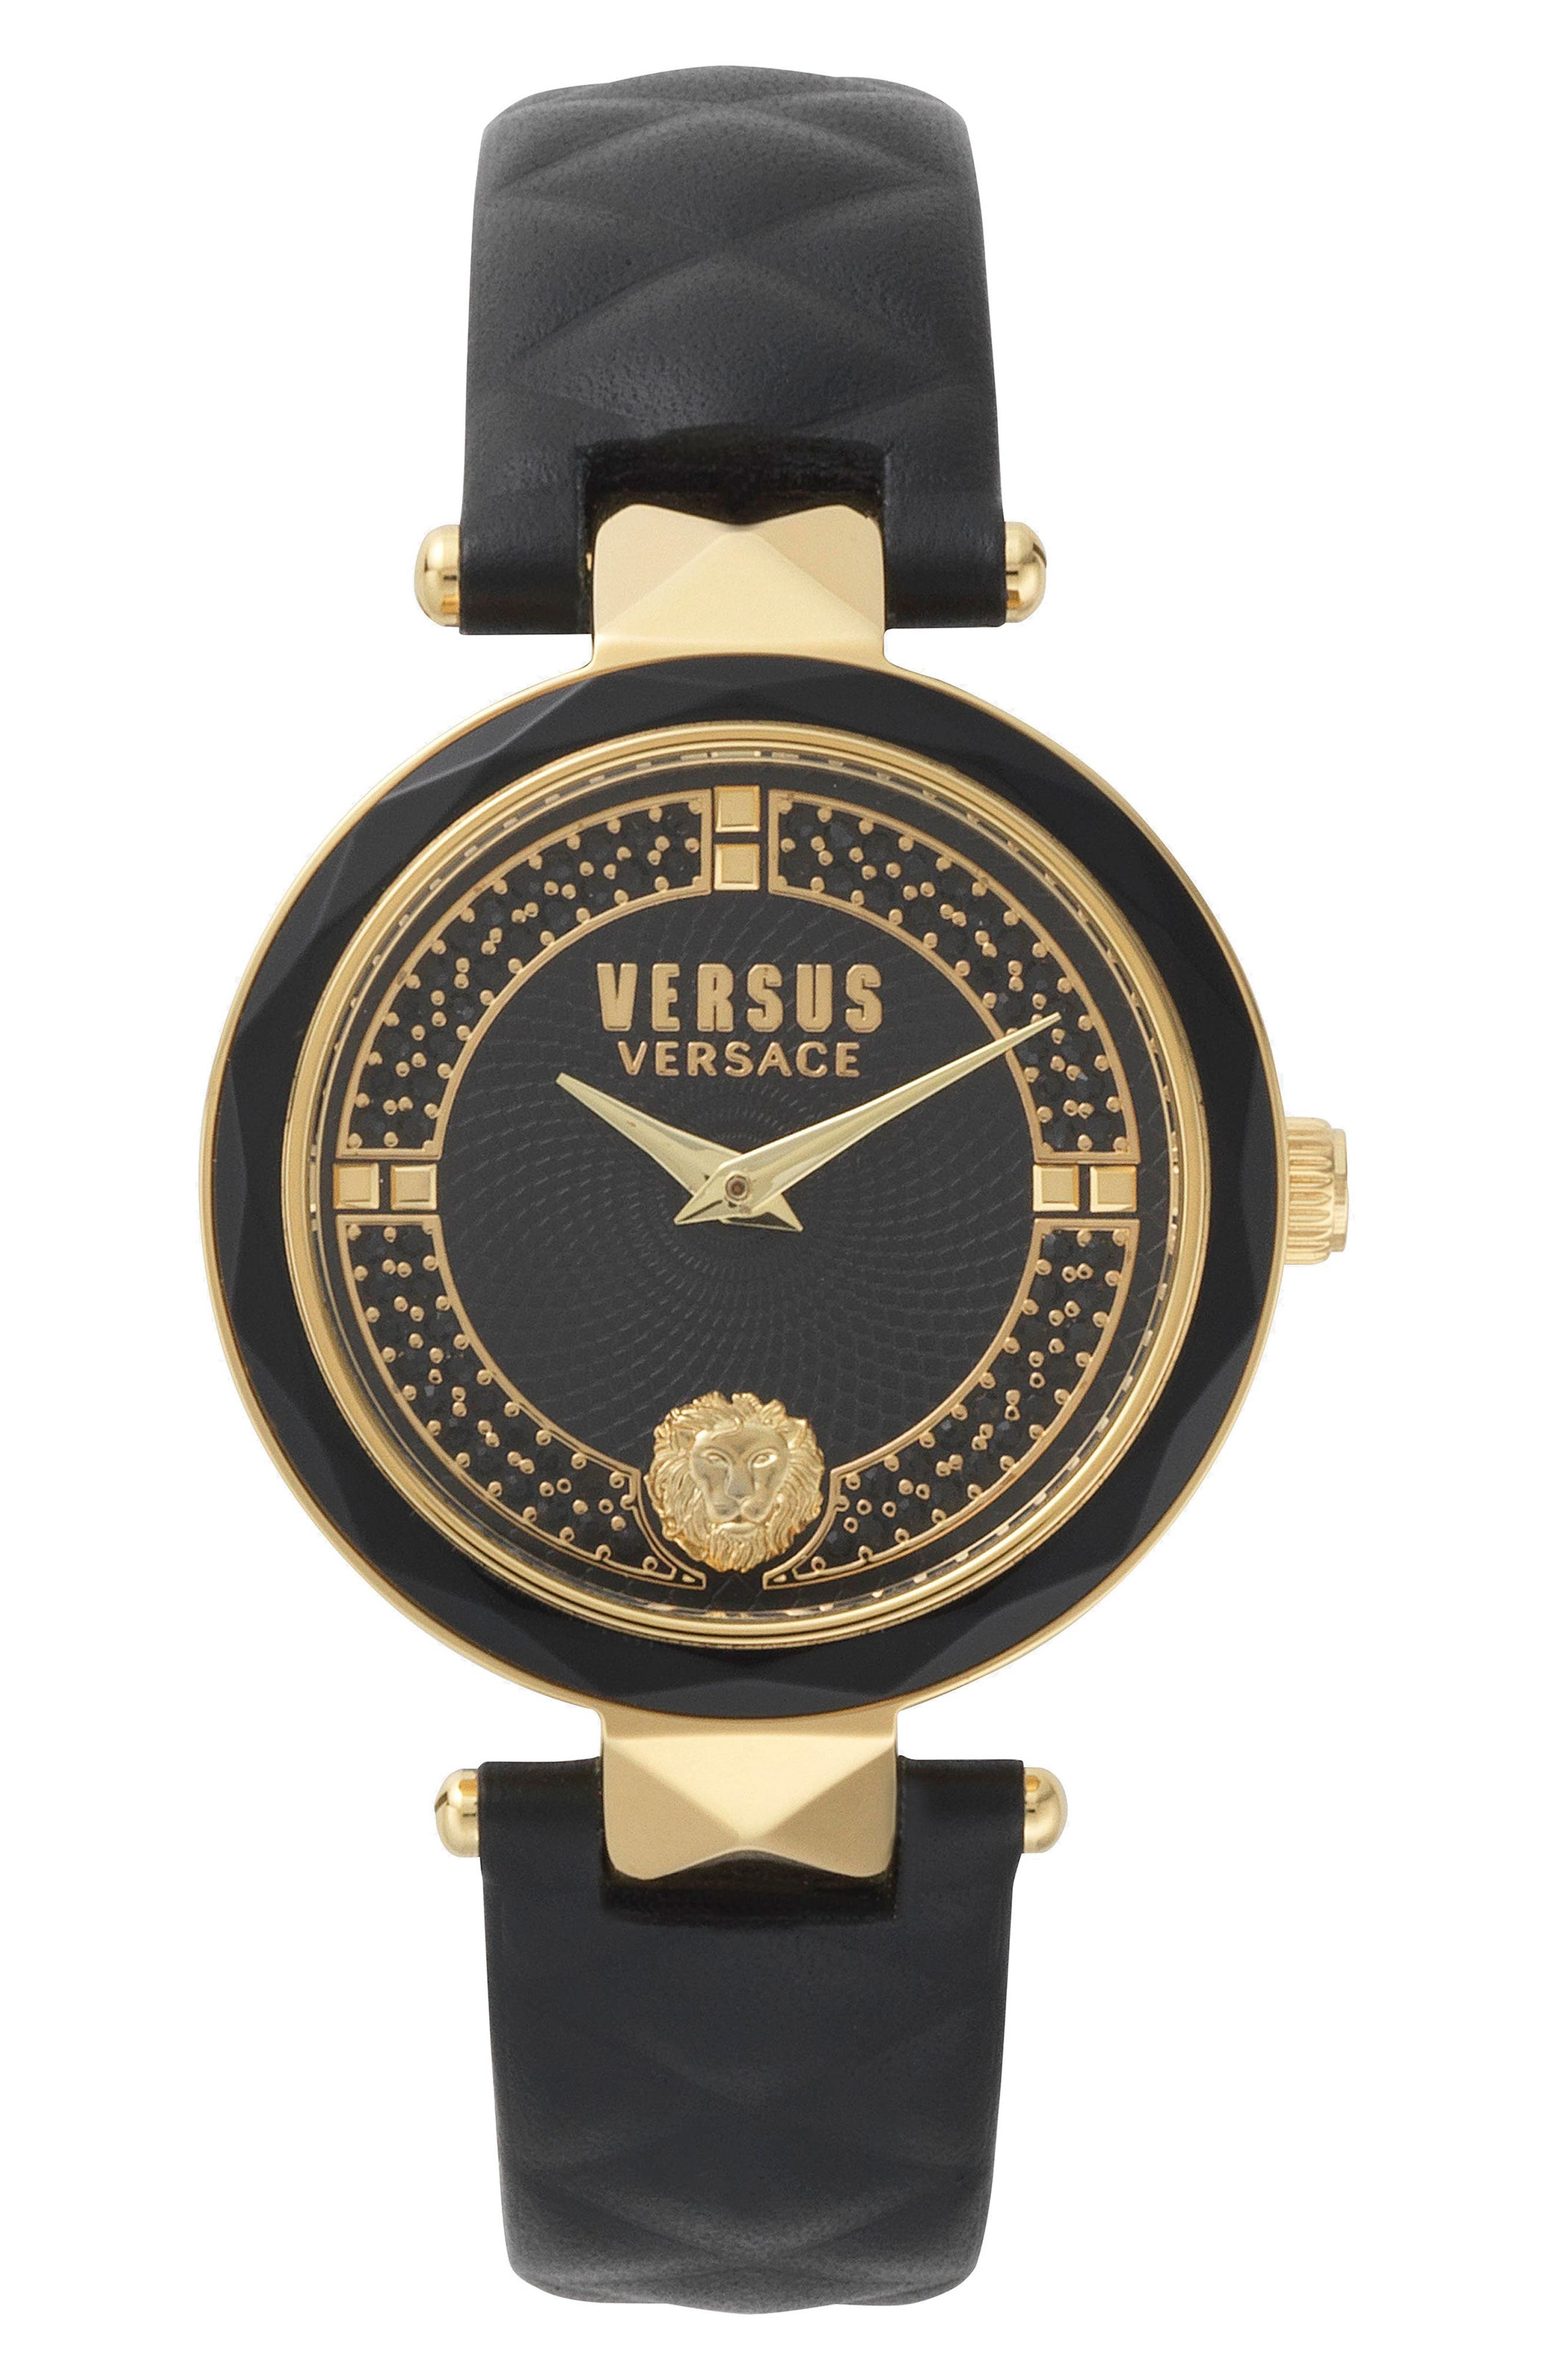 VERSUS VERSACE, Covent Garden Crystal Accent Leather Strap Watch, 36mm, Main thumbnail 1, color, BLACK/ GOLD